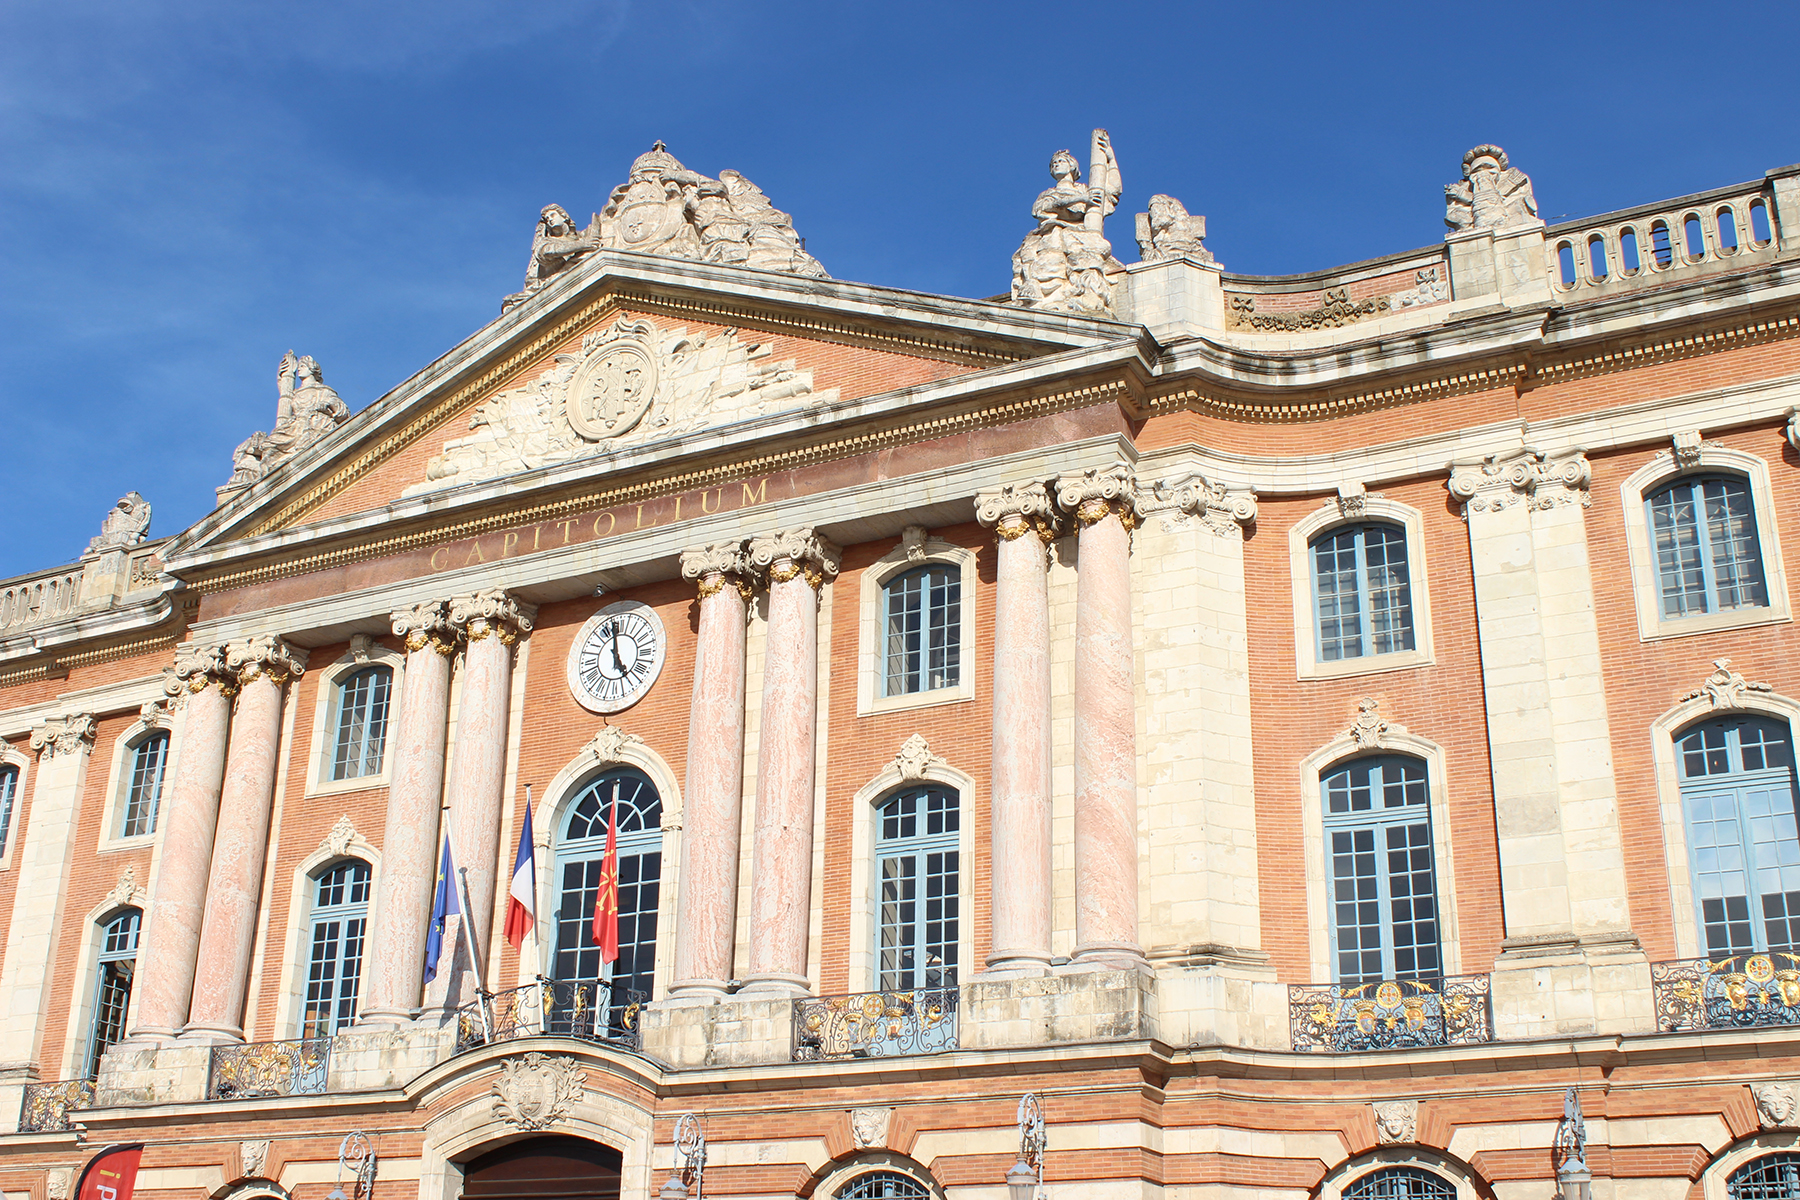 toulouse_capitole.jpg